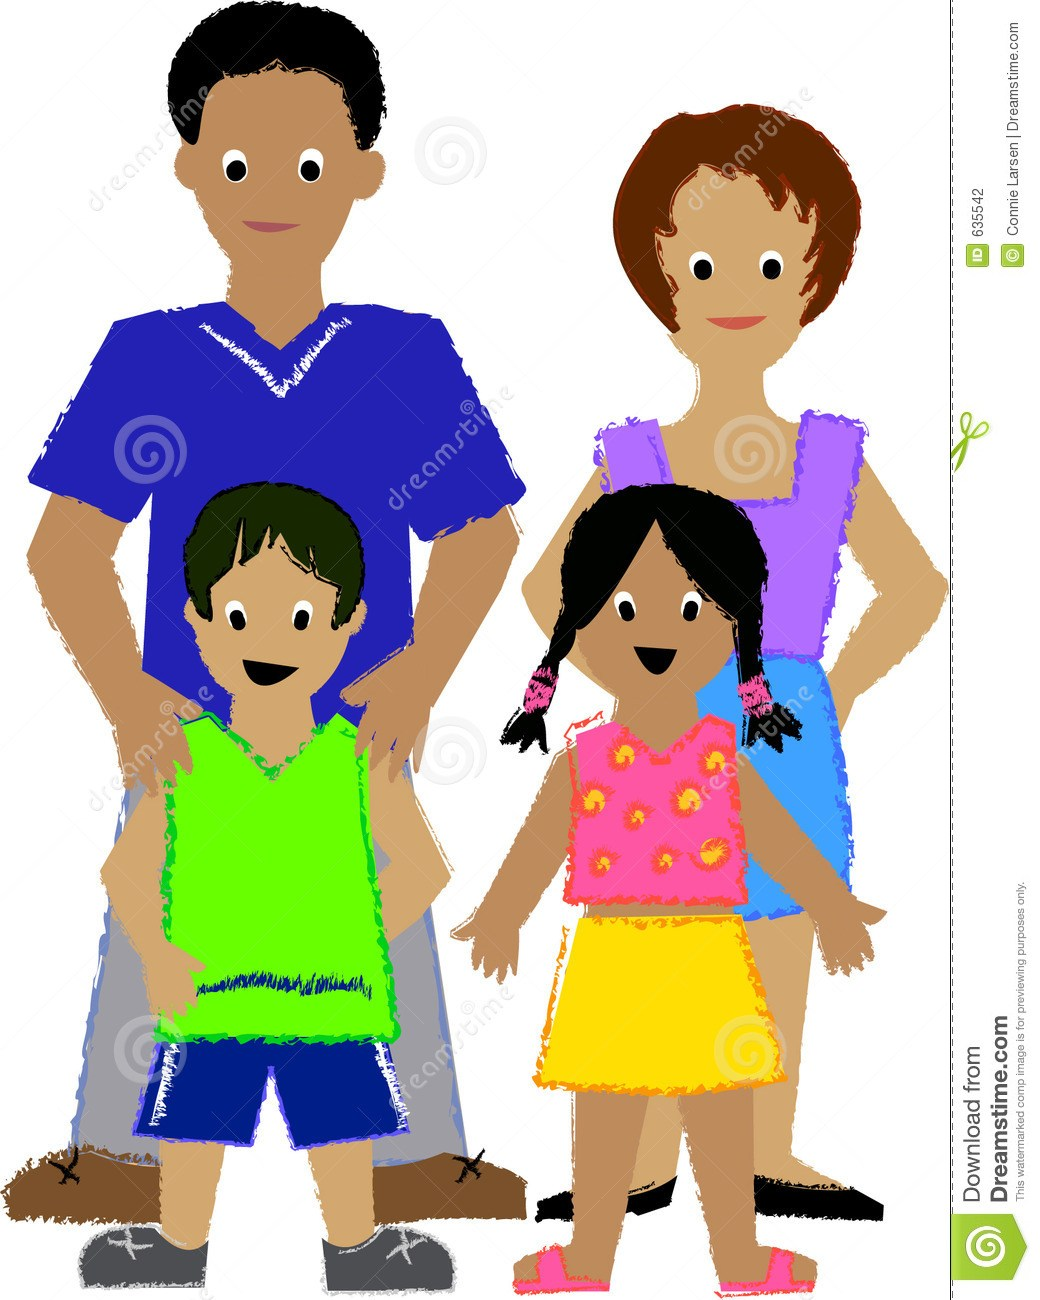 Families with children clipart 5 » Clipart Portal.